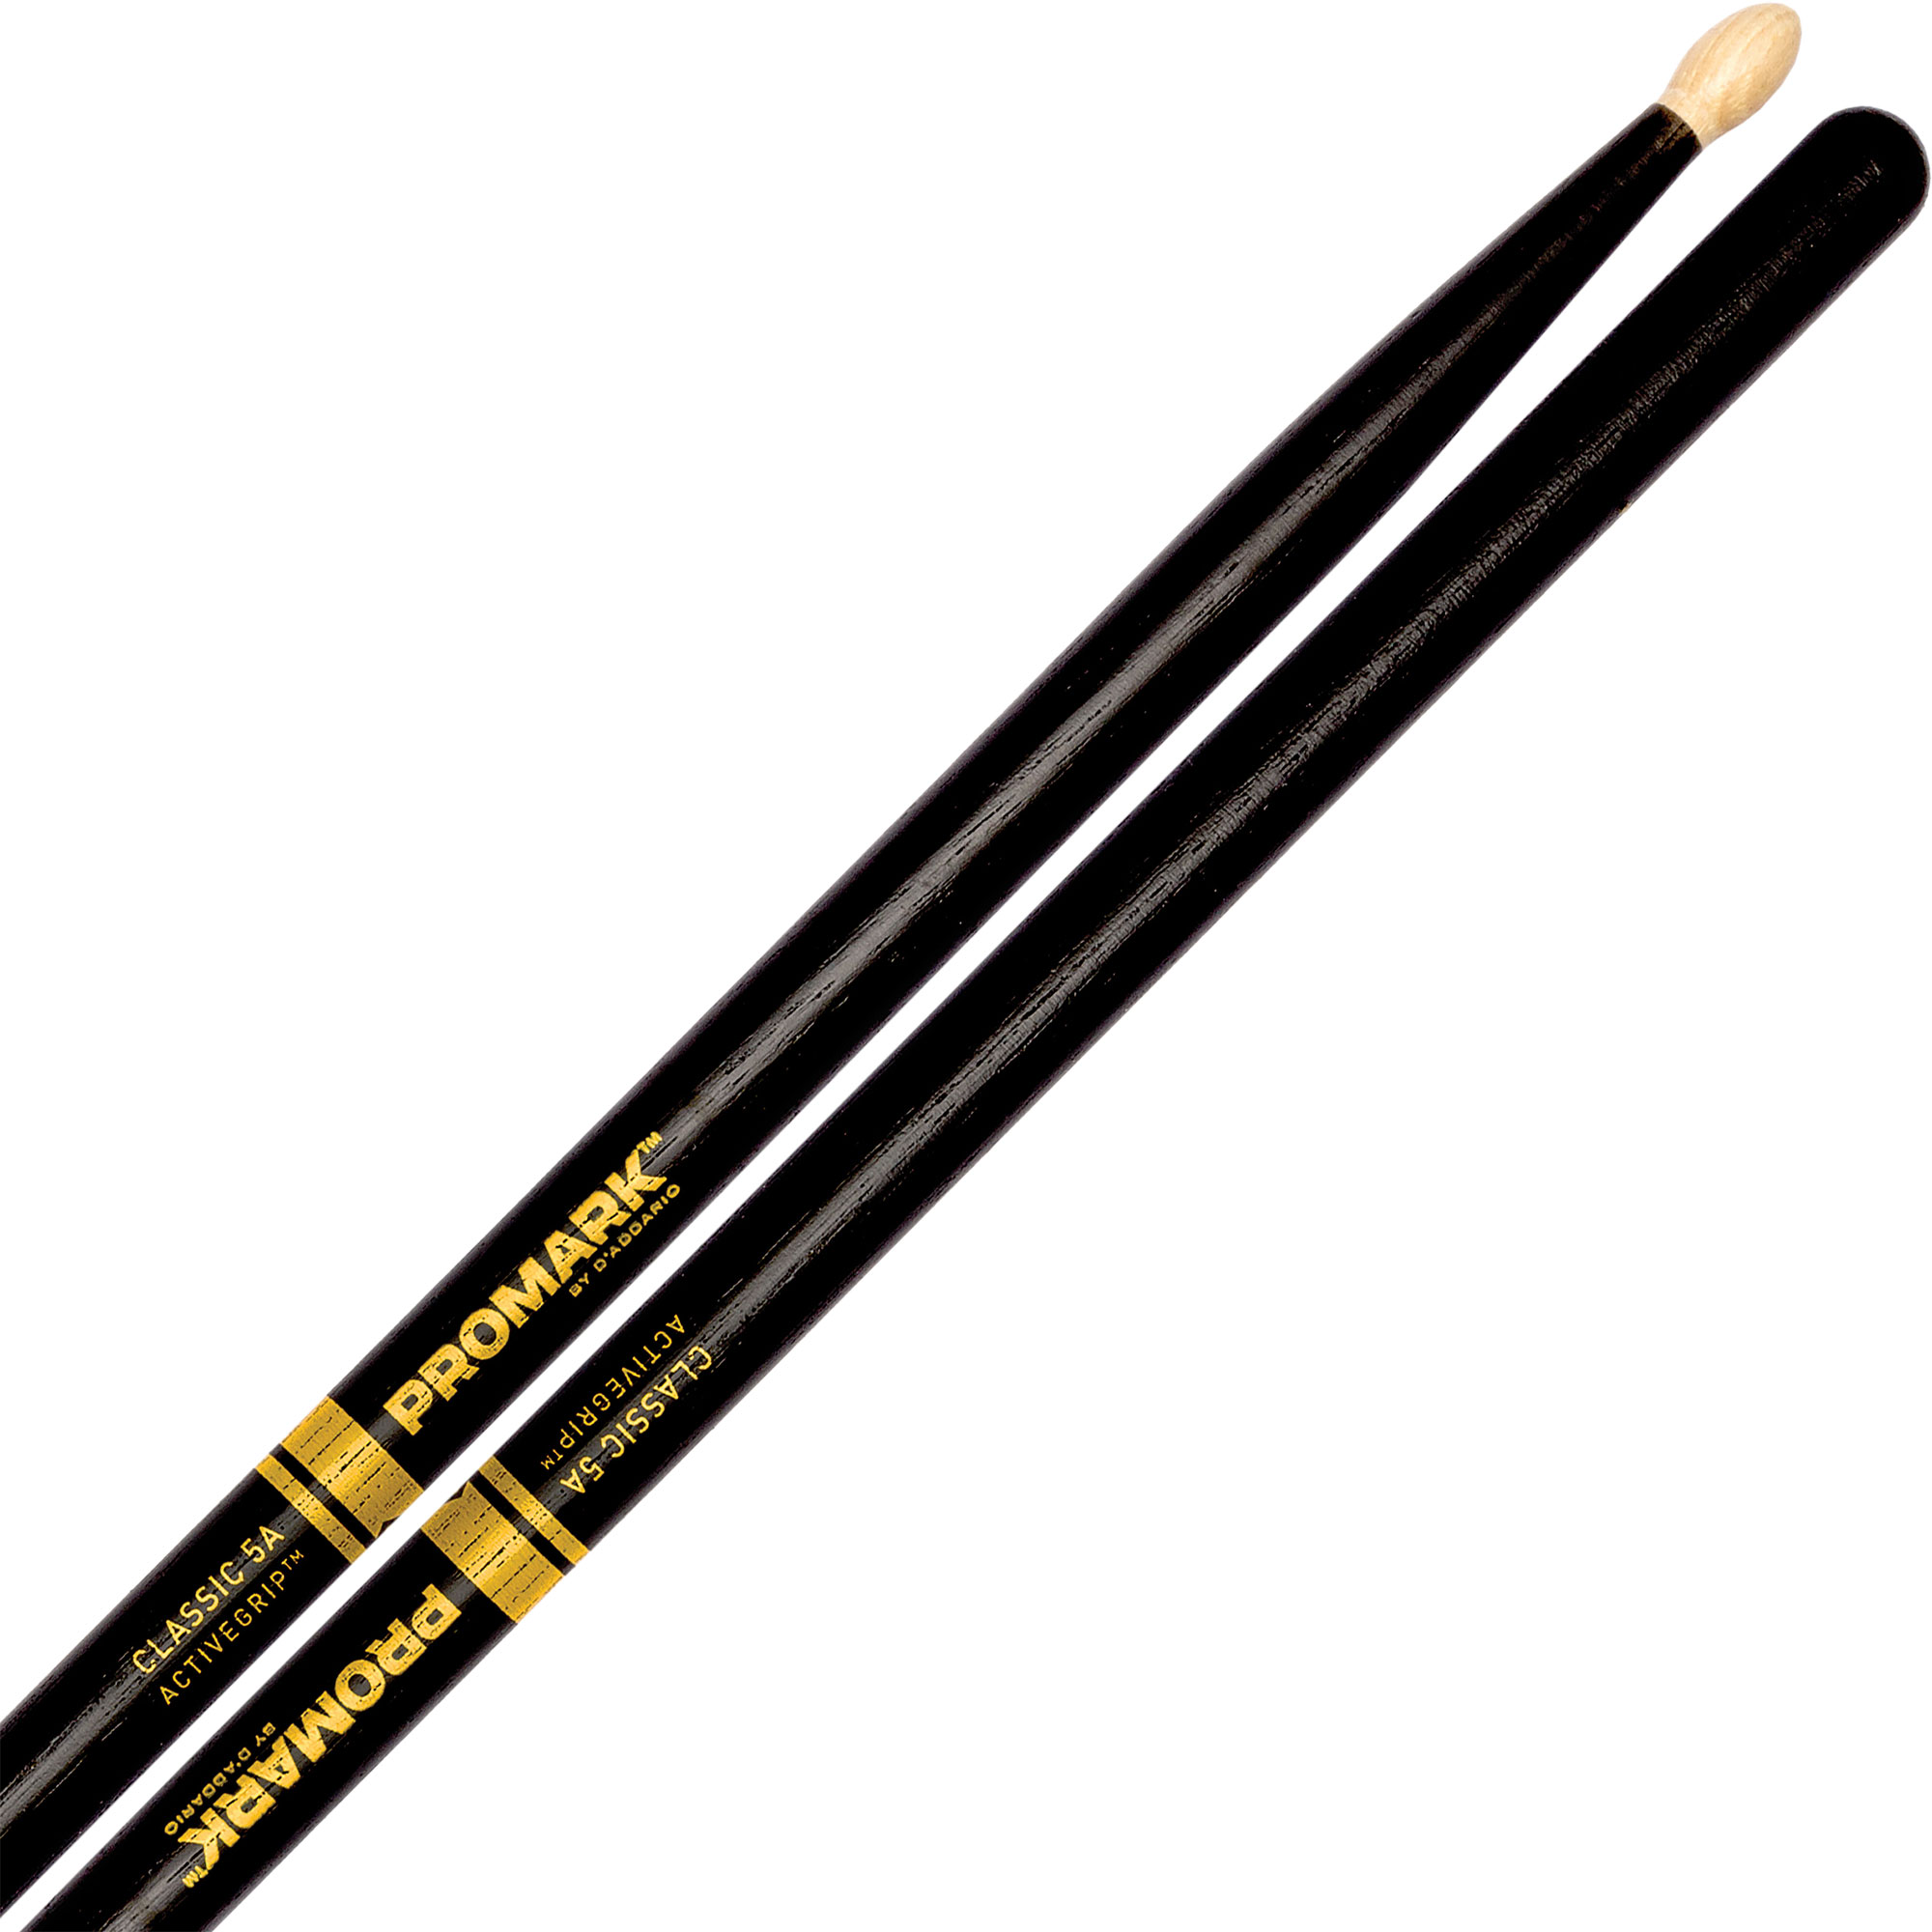 Promark Classic 5A ActiveGrip Hickory Drumsticks